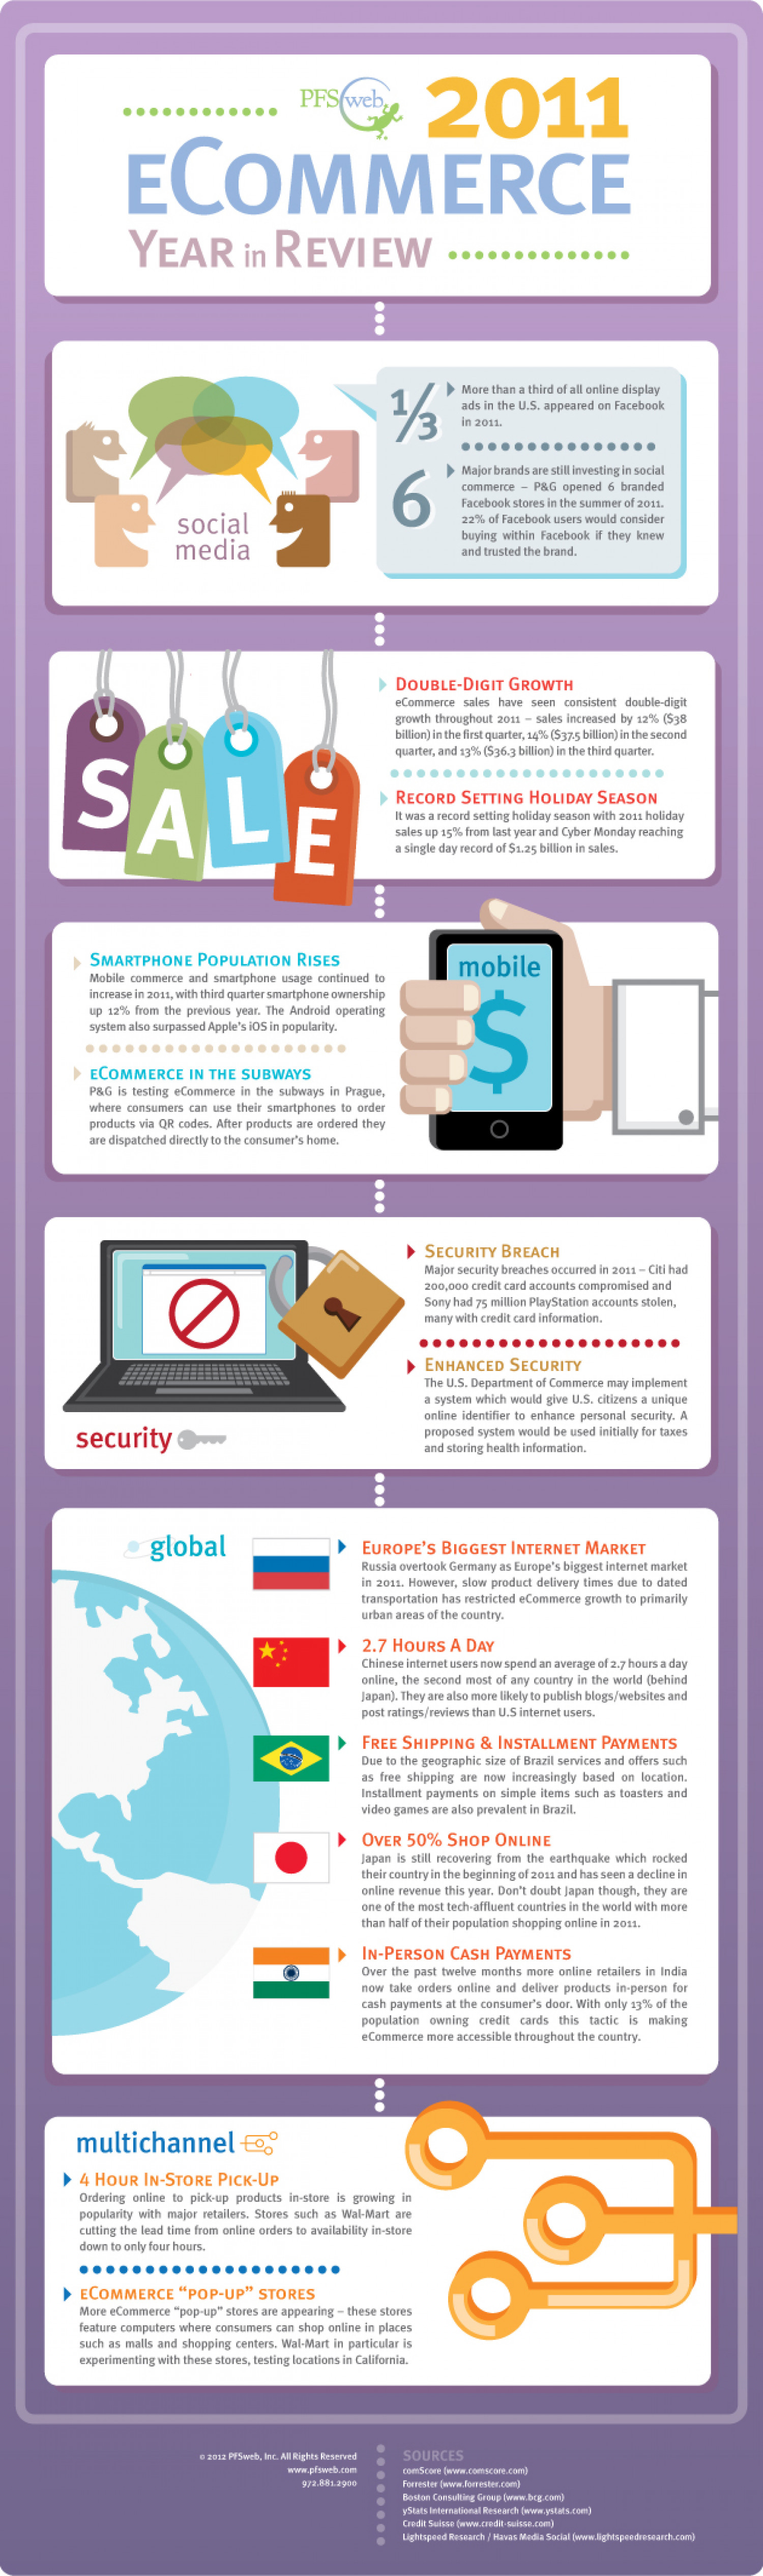 2011 eCommerce Year in Review  Infographic